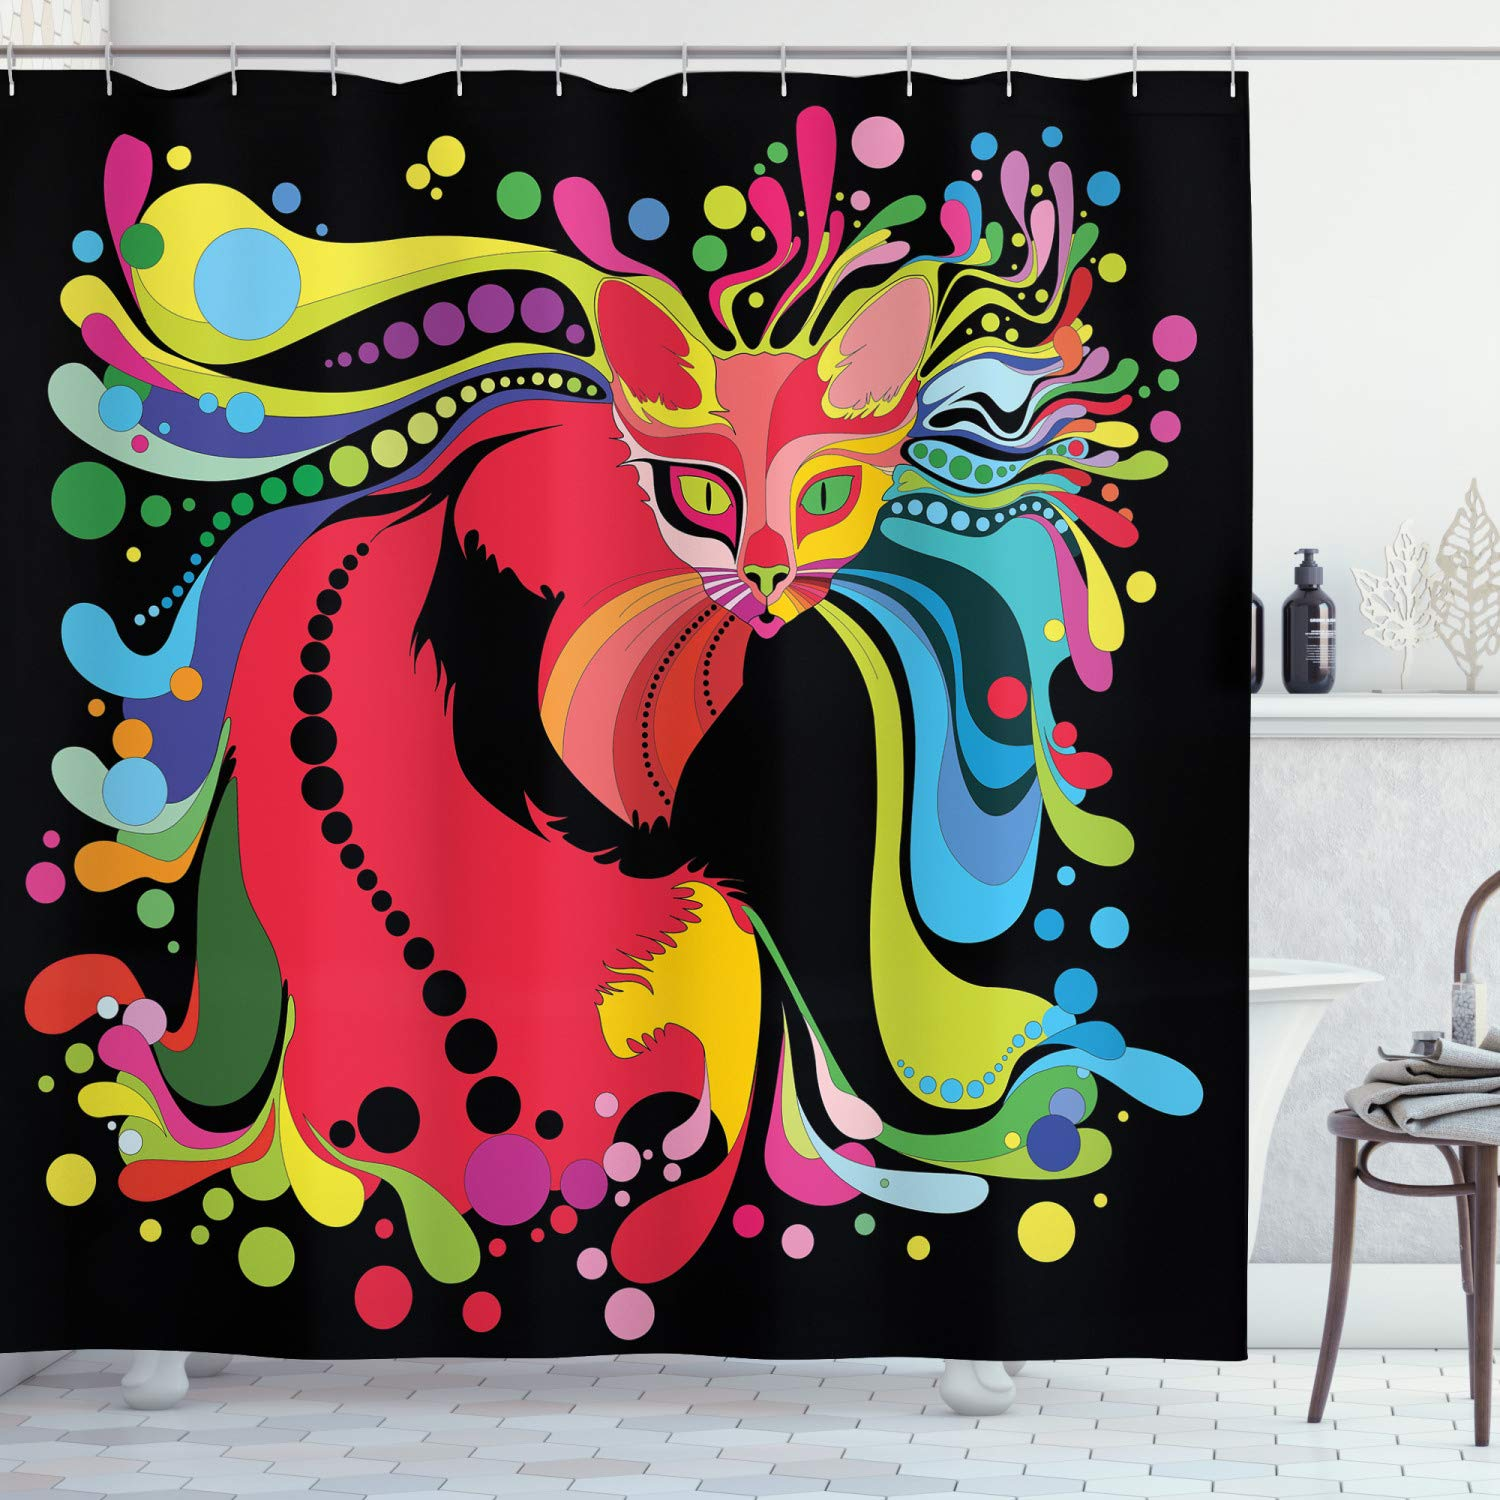 """Ambesonne Psychedelic Shower Curtain, Futuristic Kitty Visual Print Fluid Swirling Color Burst Motifs Kitty Graphic, Cloth Fabric Bathroom Decor Set with Hooks, 75"""" Long, Black Pink"""